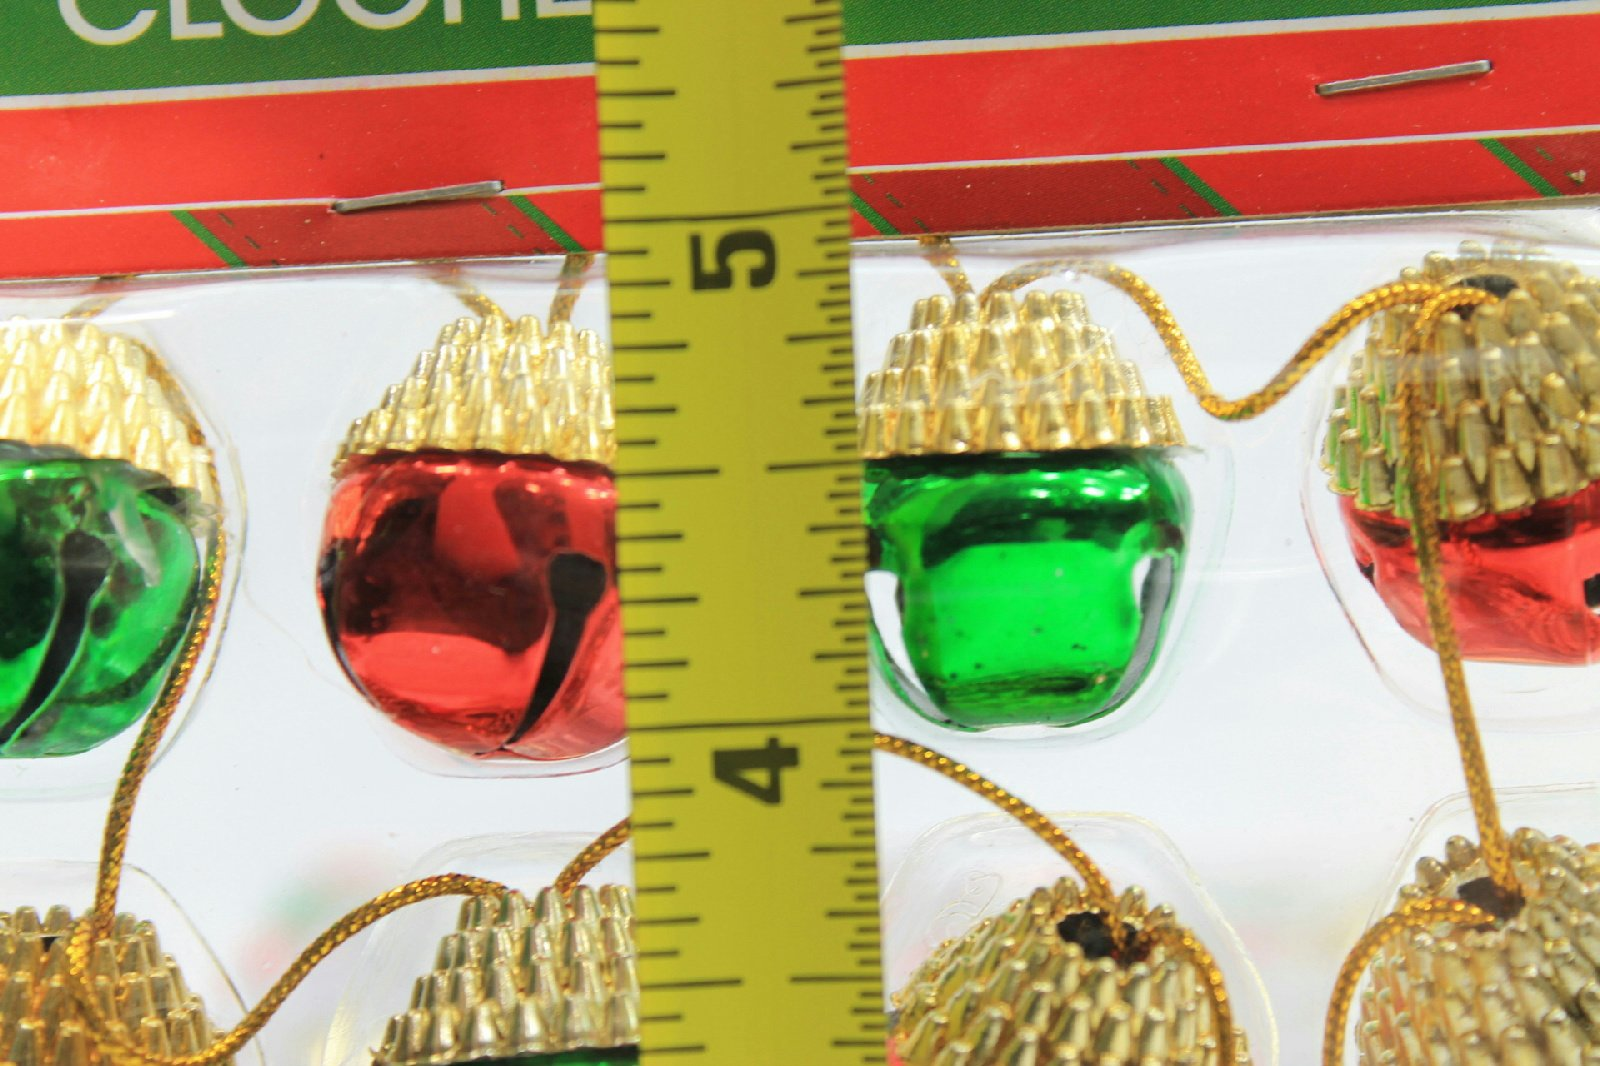 (Pack of 2) 16 Christmas House Ornament Acorn Shaped Decorative Jingle Bells (Red & Green)